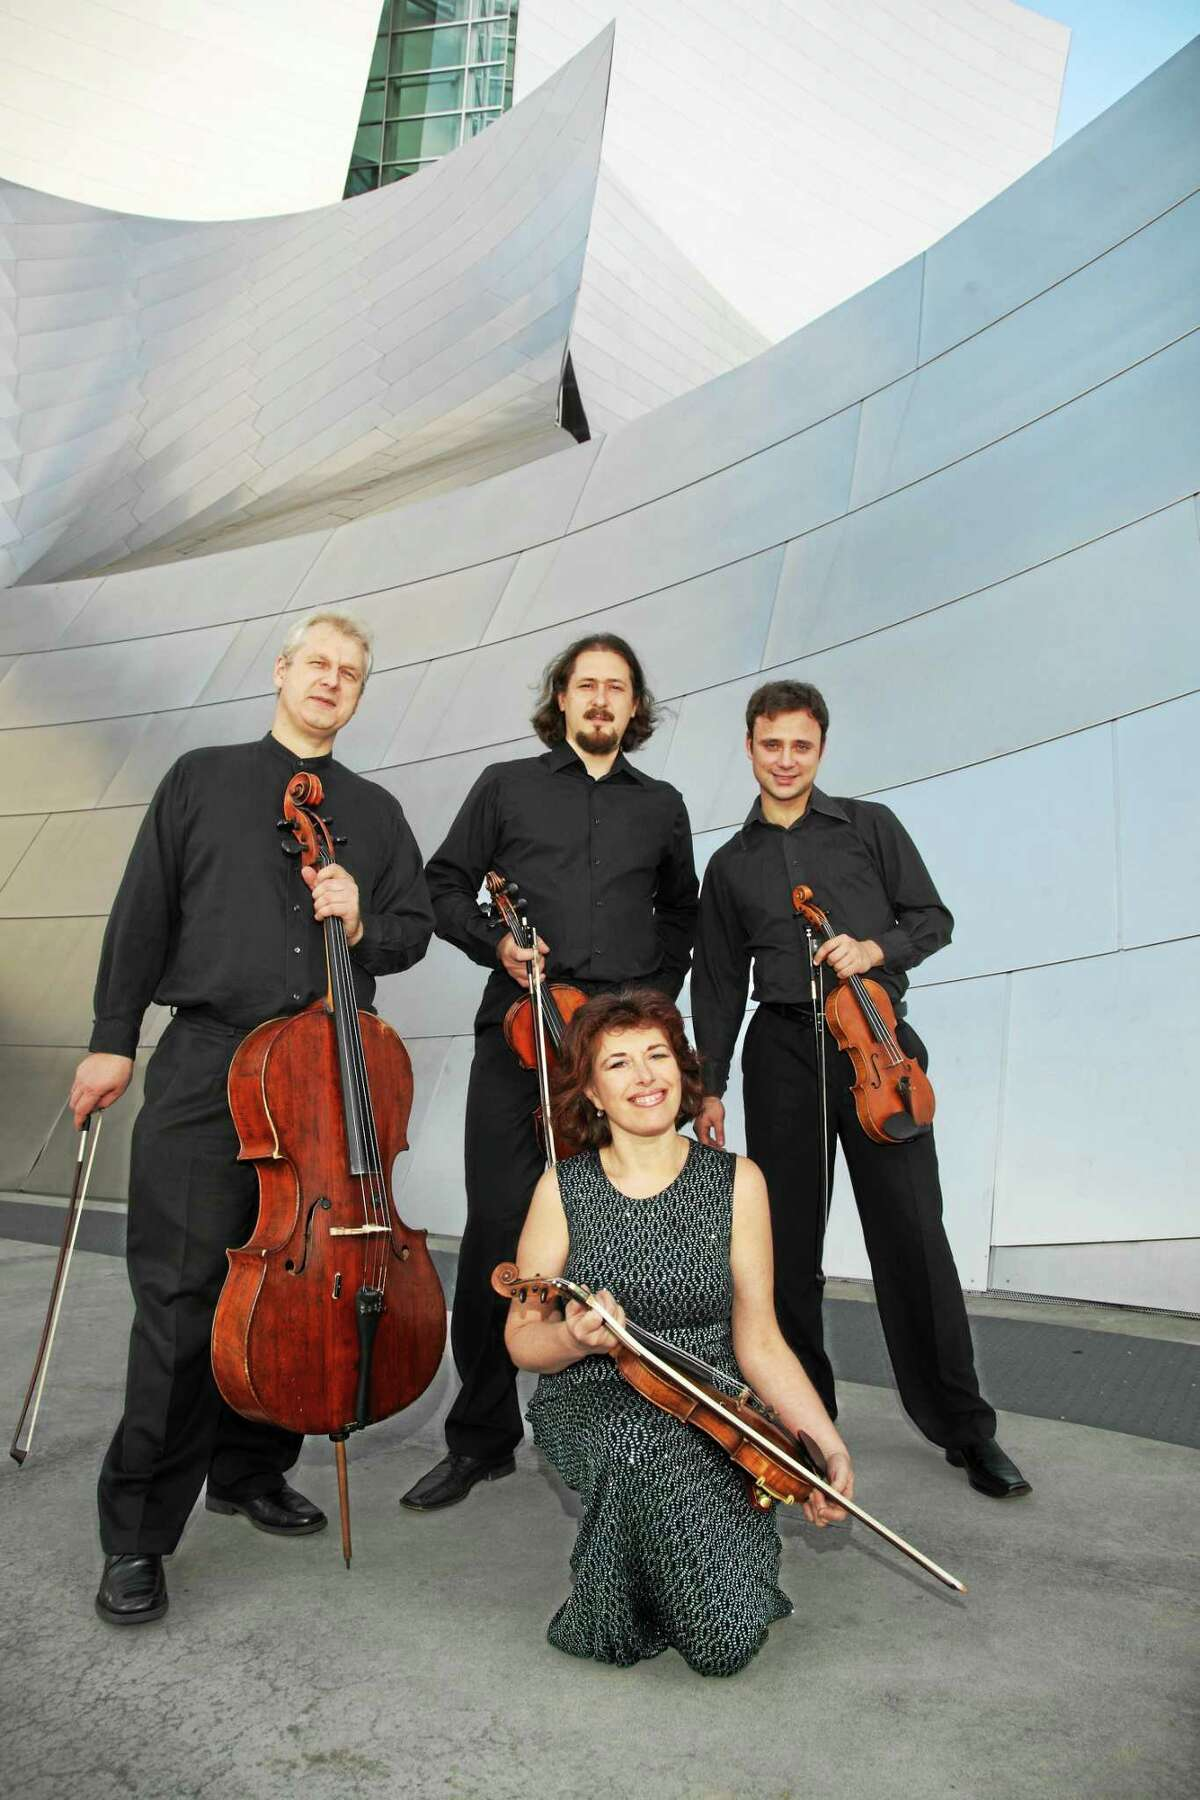 Contributed photo The St. Petersburg String Quartet returns to Music Mountain, with guest artist Pamela Mia Paul, piano, on Sunday, Aug. 9.